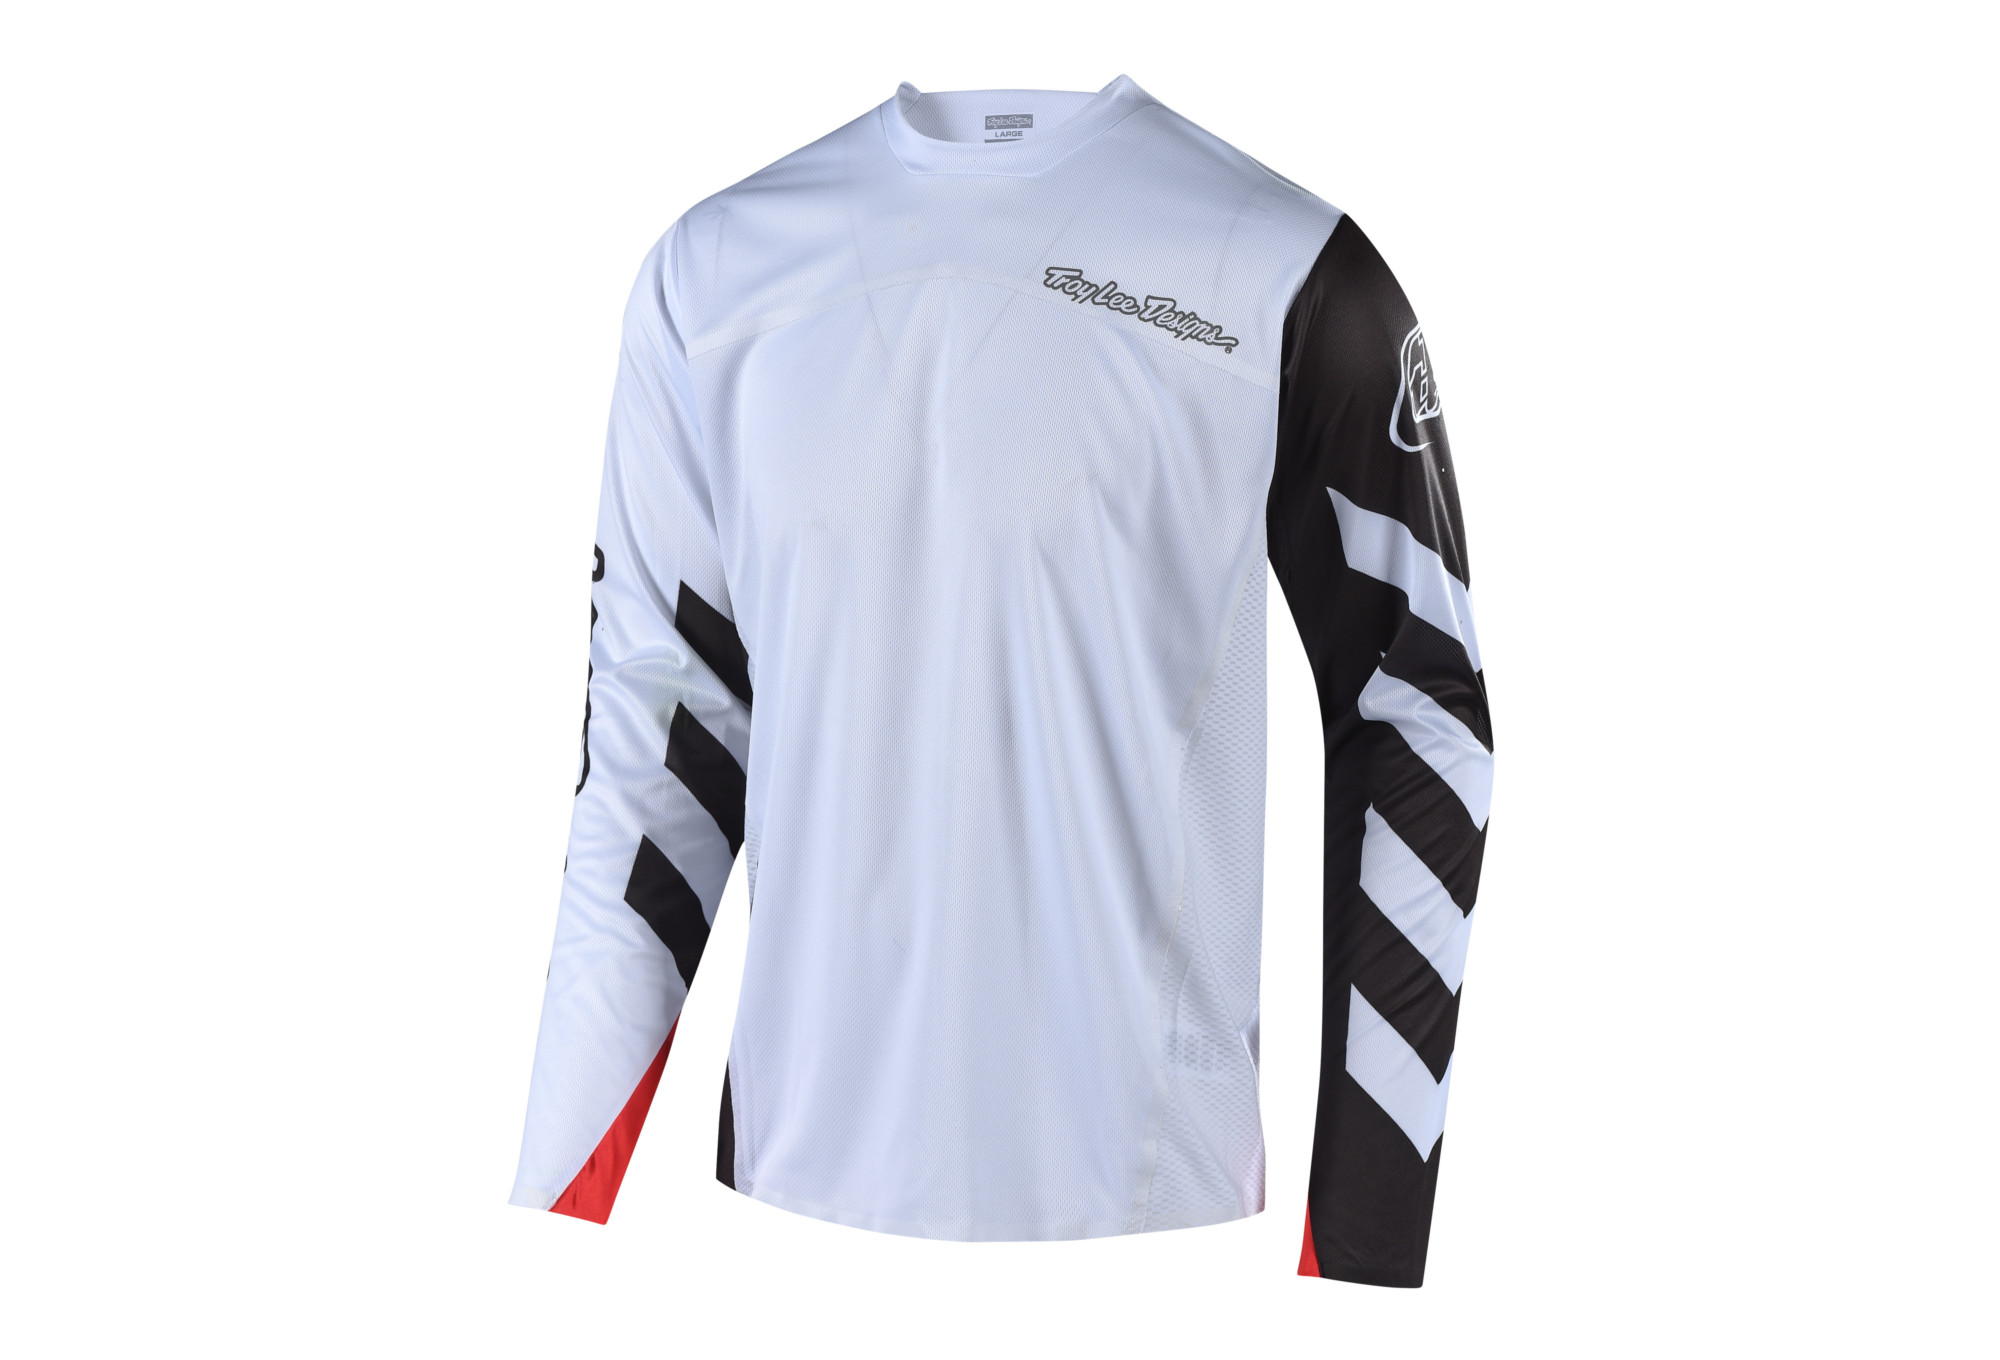 d8360edc2 Troy Lee Designs Sprint Elite Escape Long Sleeves Jersey White Black ...